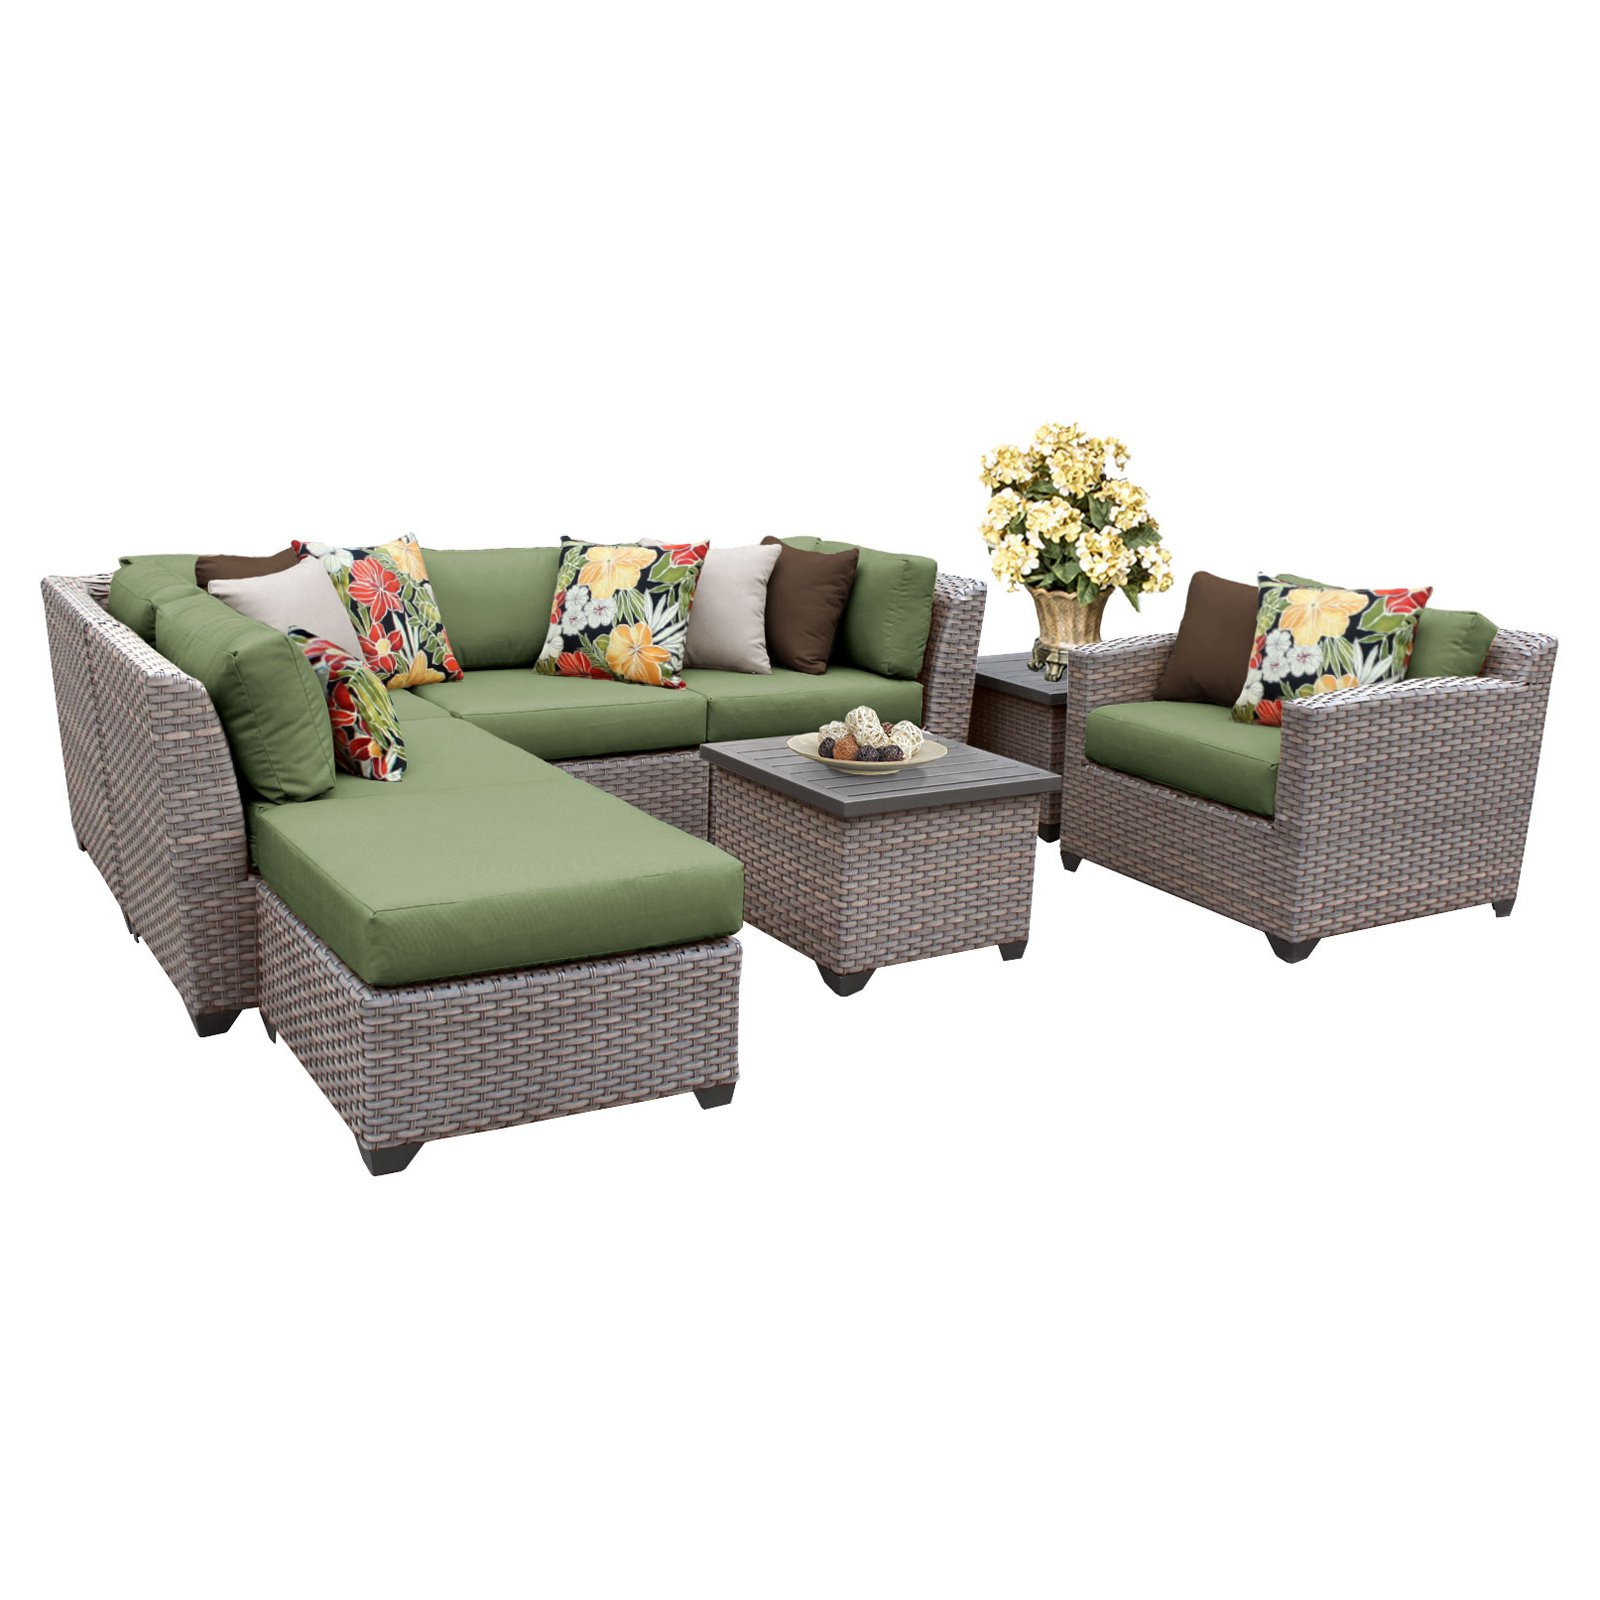 tk classics florence wicker 8 piece patio conversation set with end table and 2 sets of cushion covers